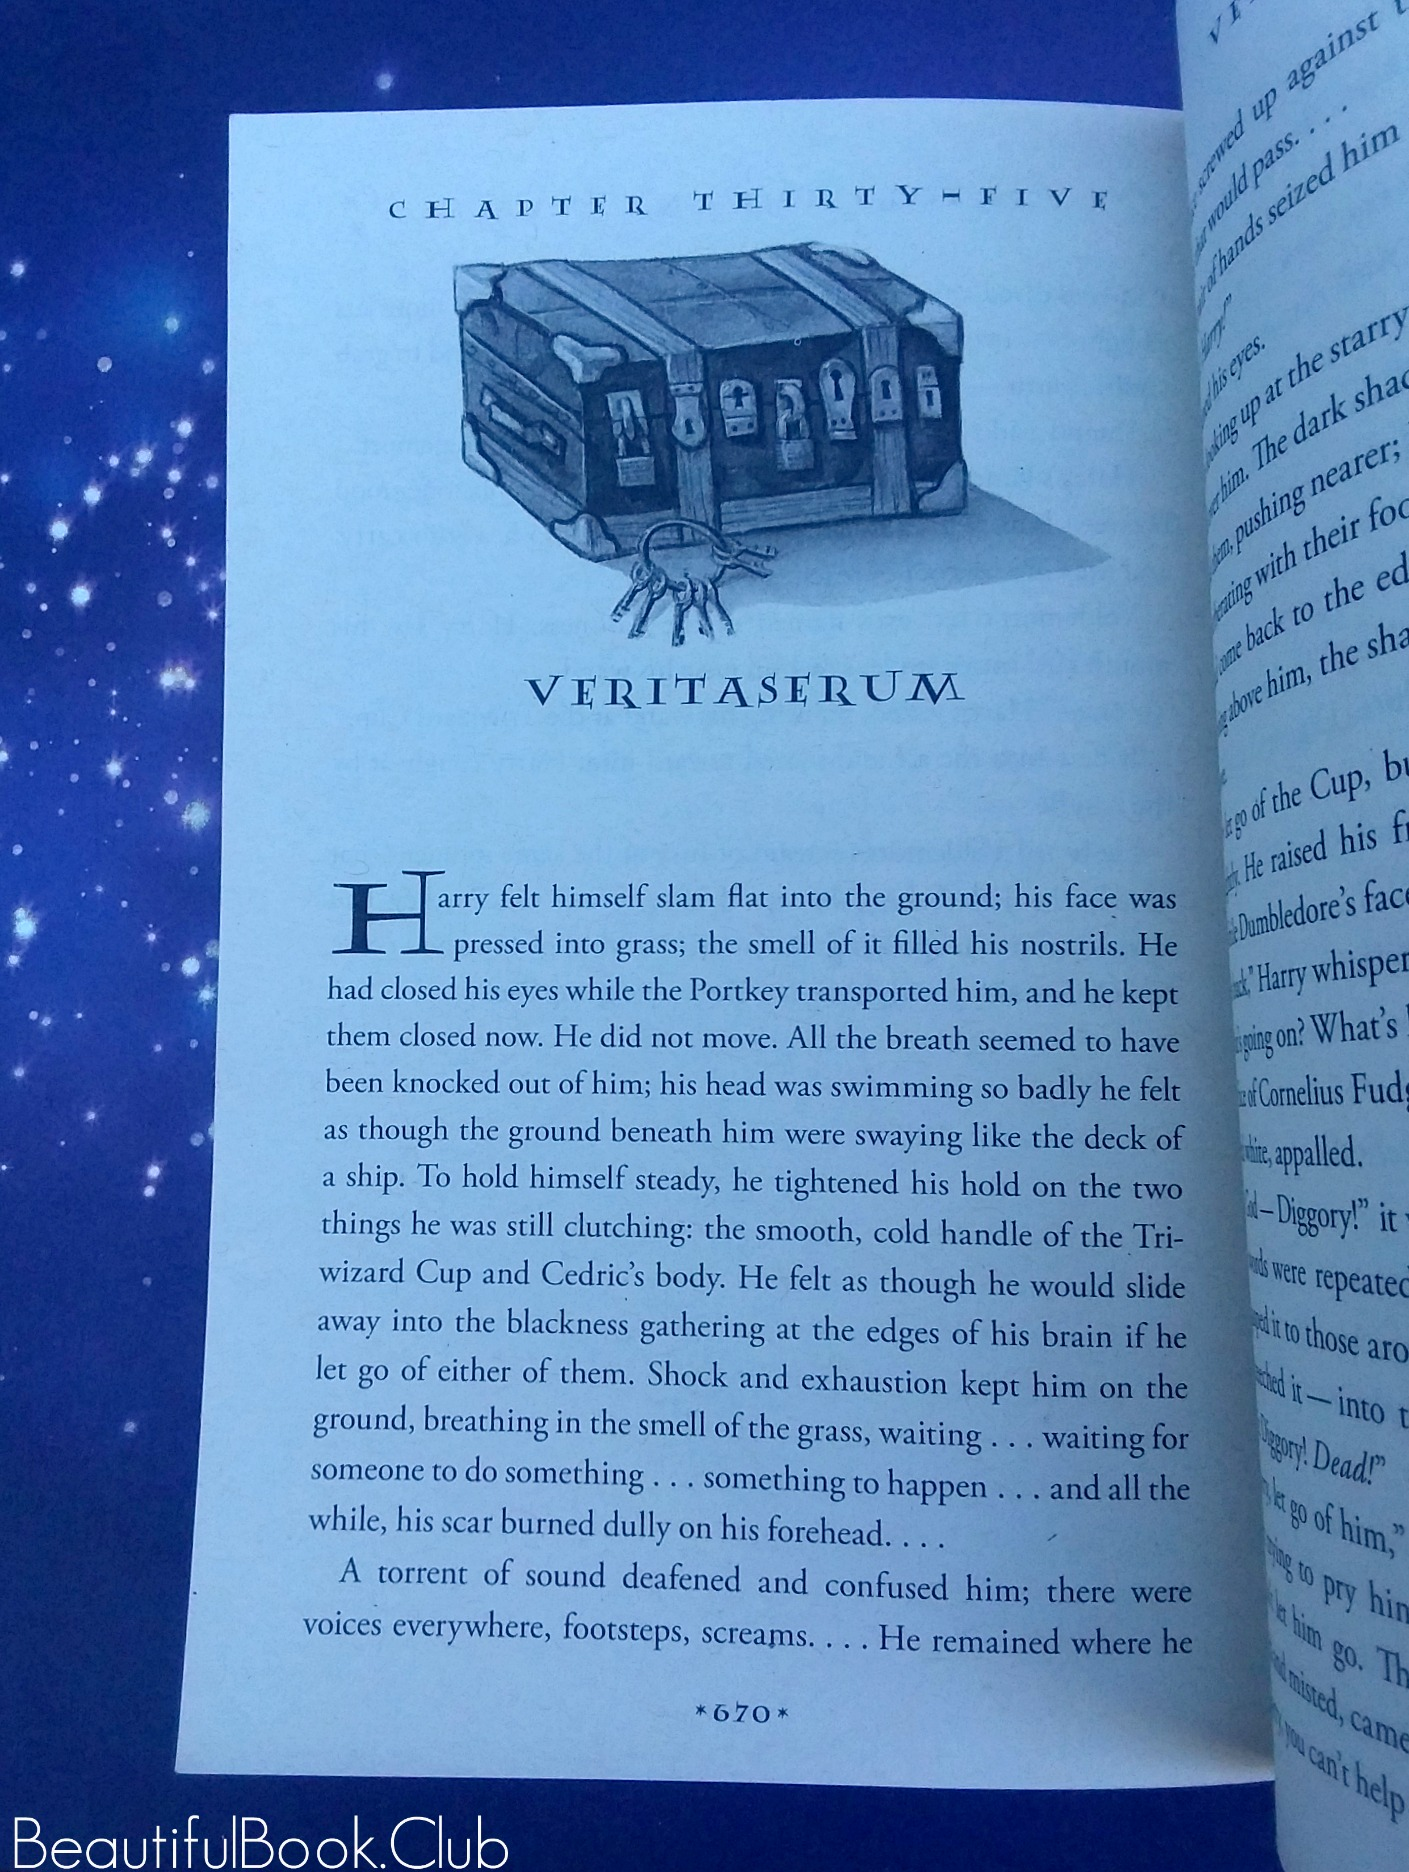 Harry Potter and the Goblet of Fire by J.K. Rowing chapter thirty-five Veritaserum